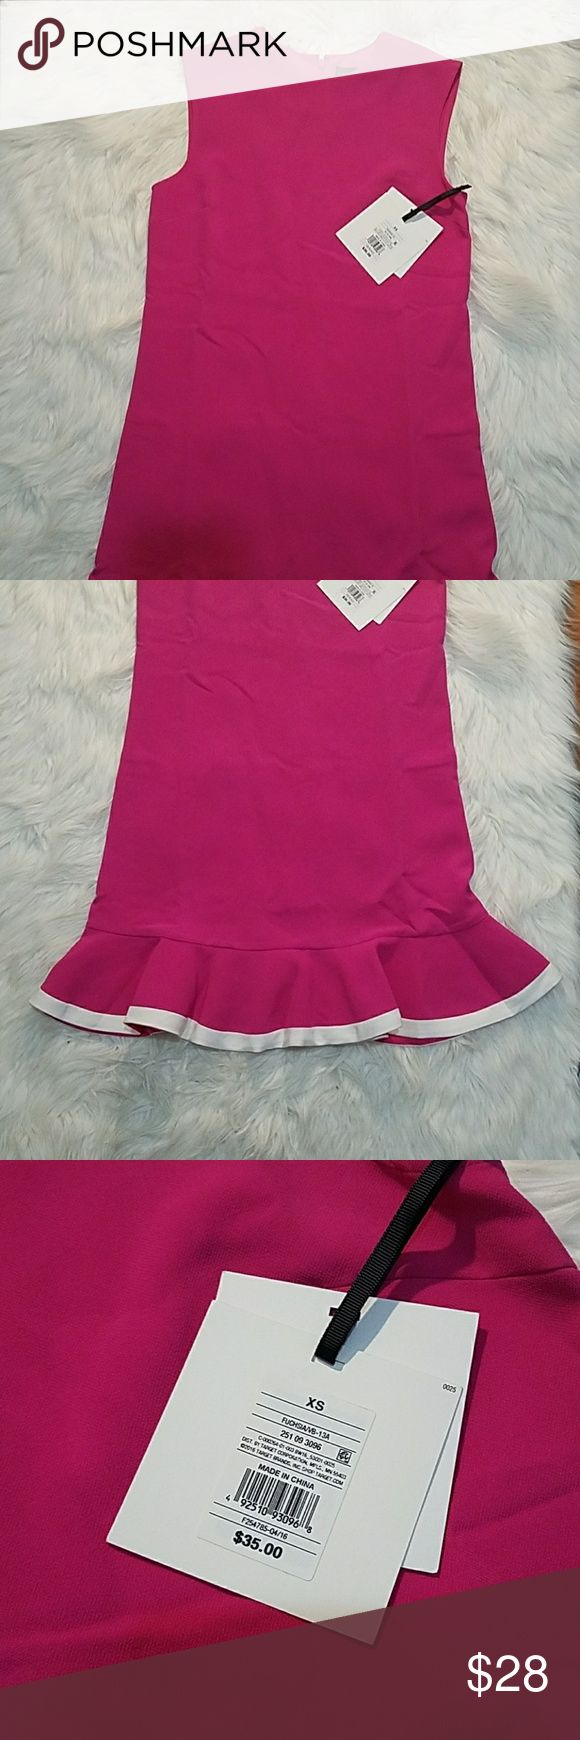 🌹WEEKEND SALE🌹Victoria Beckham Dress Beautiful Pink Victoria Beckham For Target Dress With White Lining At The Hem. Size XS. Shell: 94% Polyester  6% Spandex. Lining: 100% Polyester. Great Dress For Any Occasion! Victoria Beckham for Target Dresses